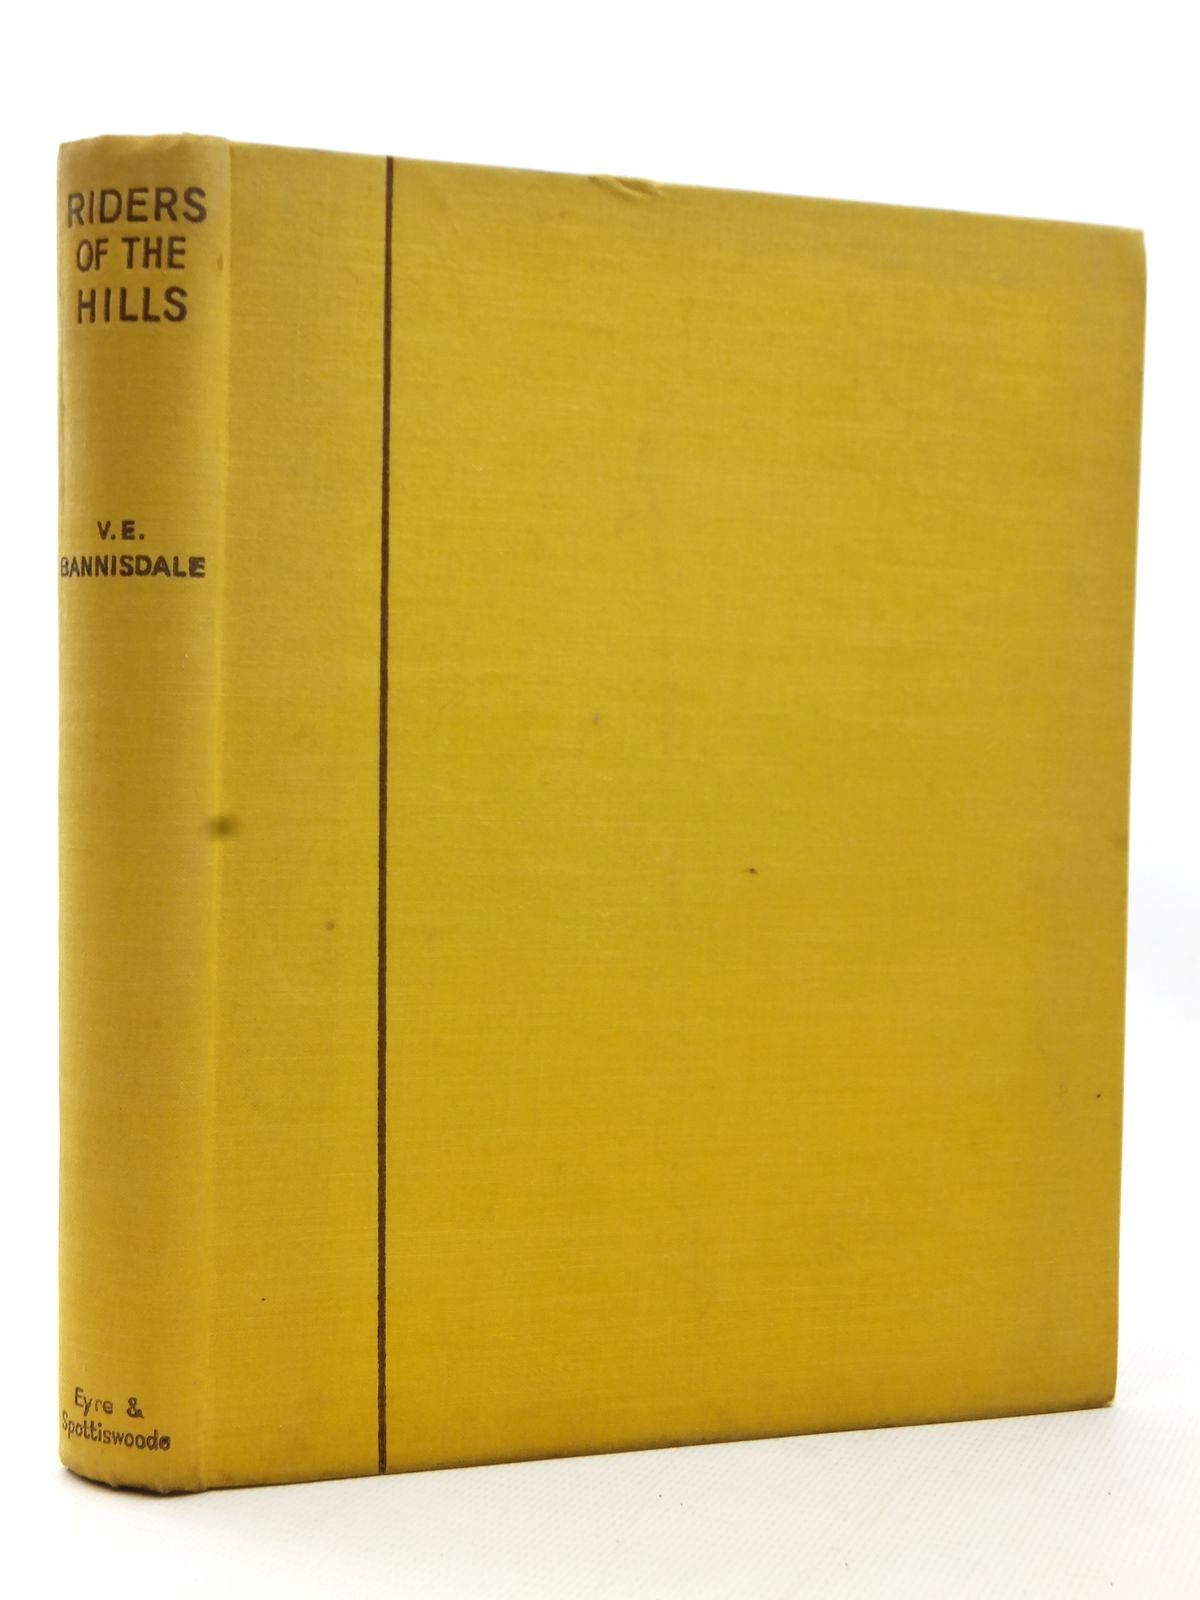 Photo of RIDERS OF THE HILLS written by Bannisdale, V.E. illustrated by Edwards, Lionel published by Eyre & Spottiswoode (STOCK CODE: 1609134)  for sale by Stella & Rose's Books